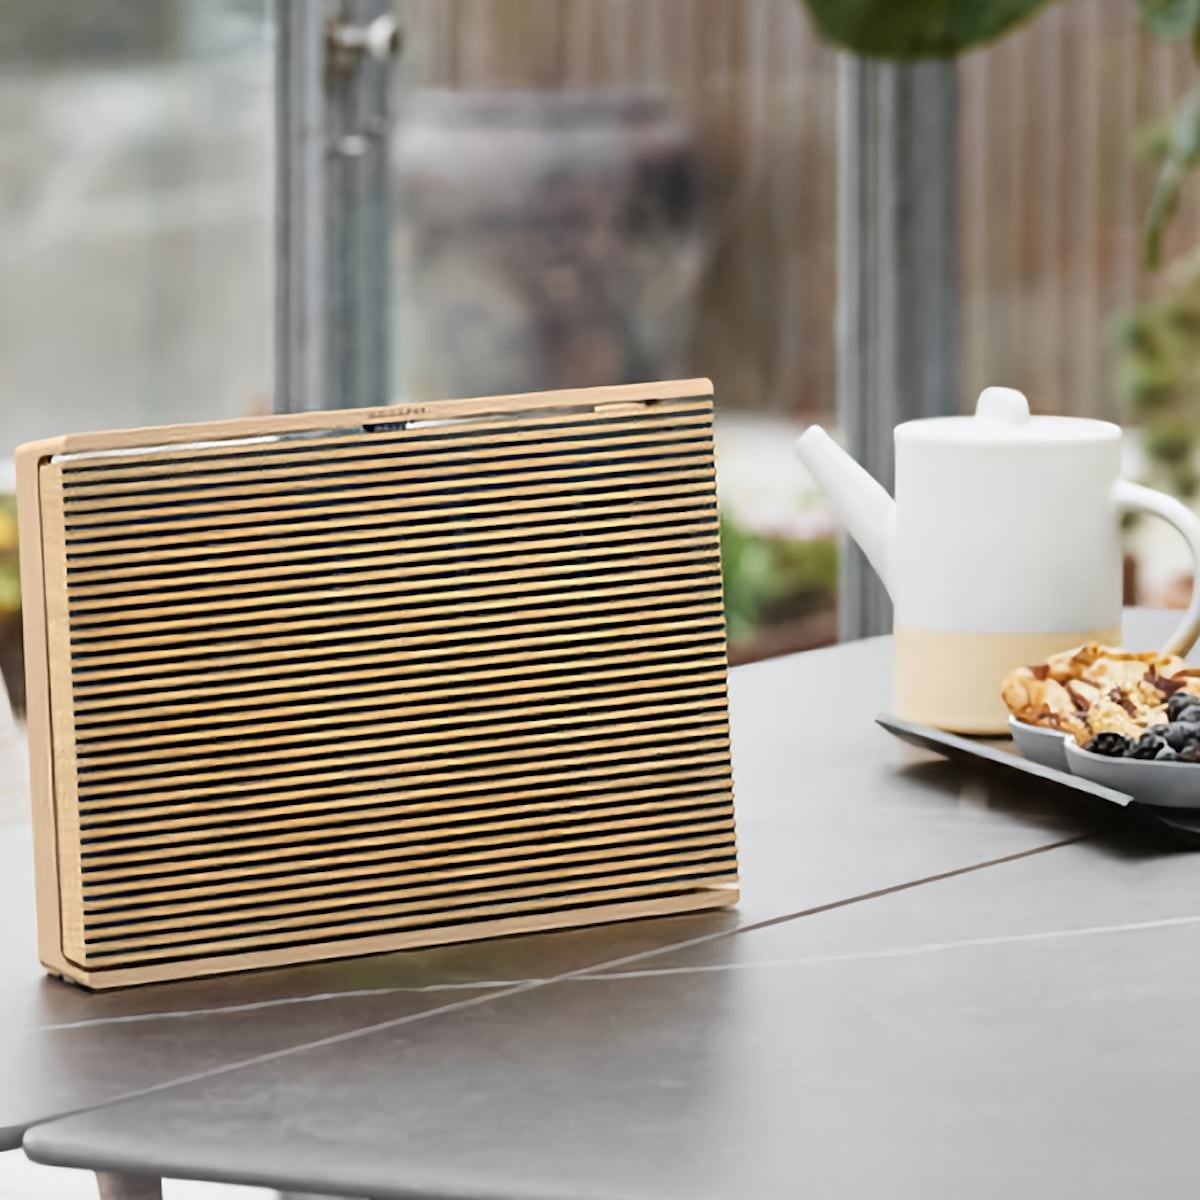 B&O's Beosound Level connected speaker is built to last thumbnail